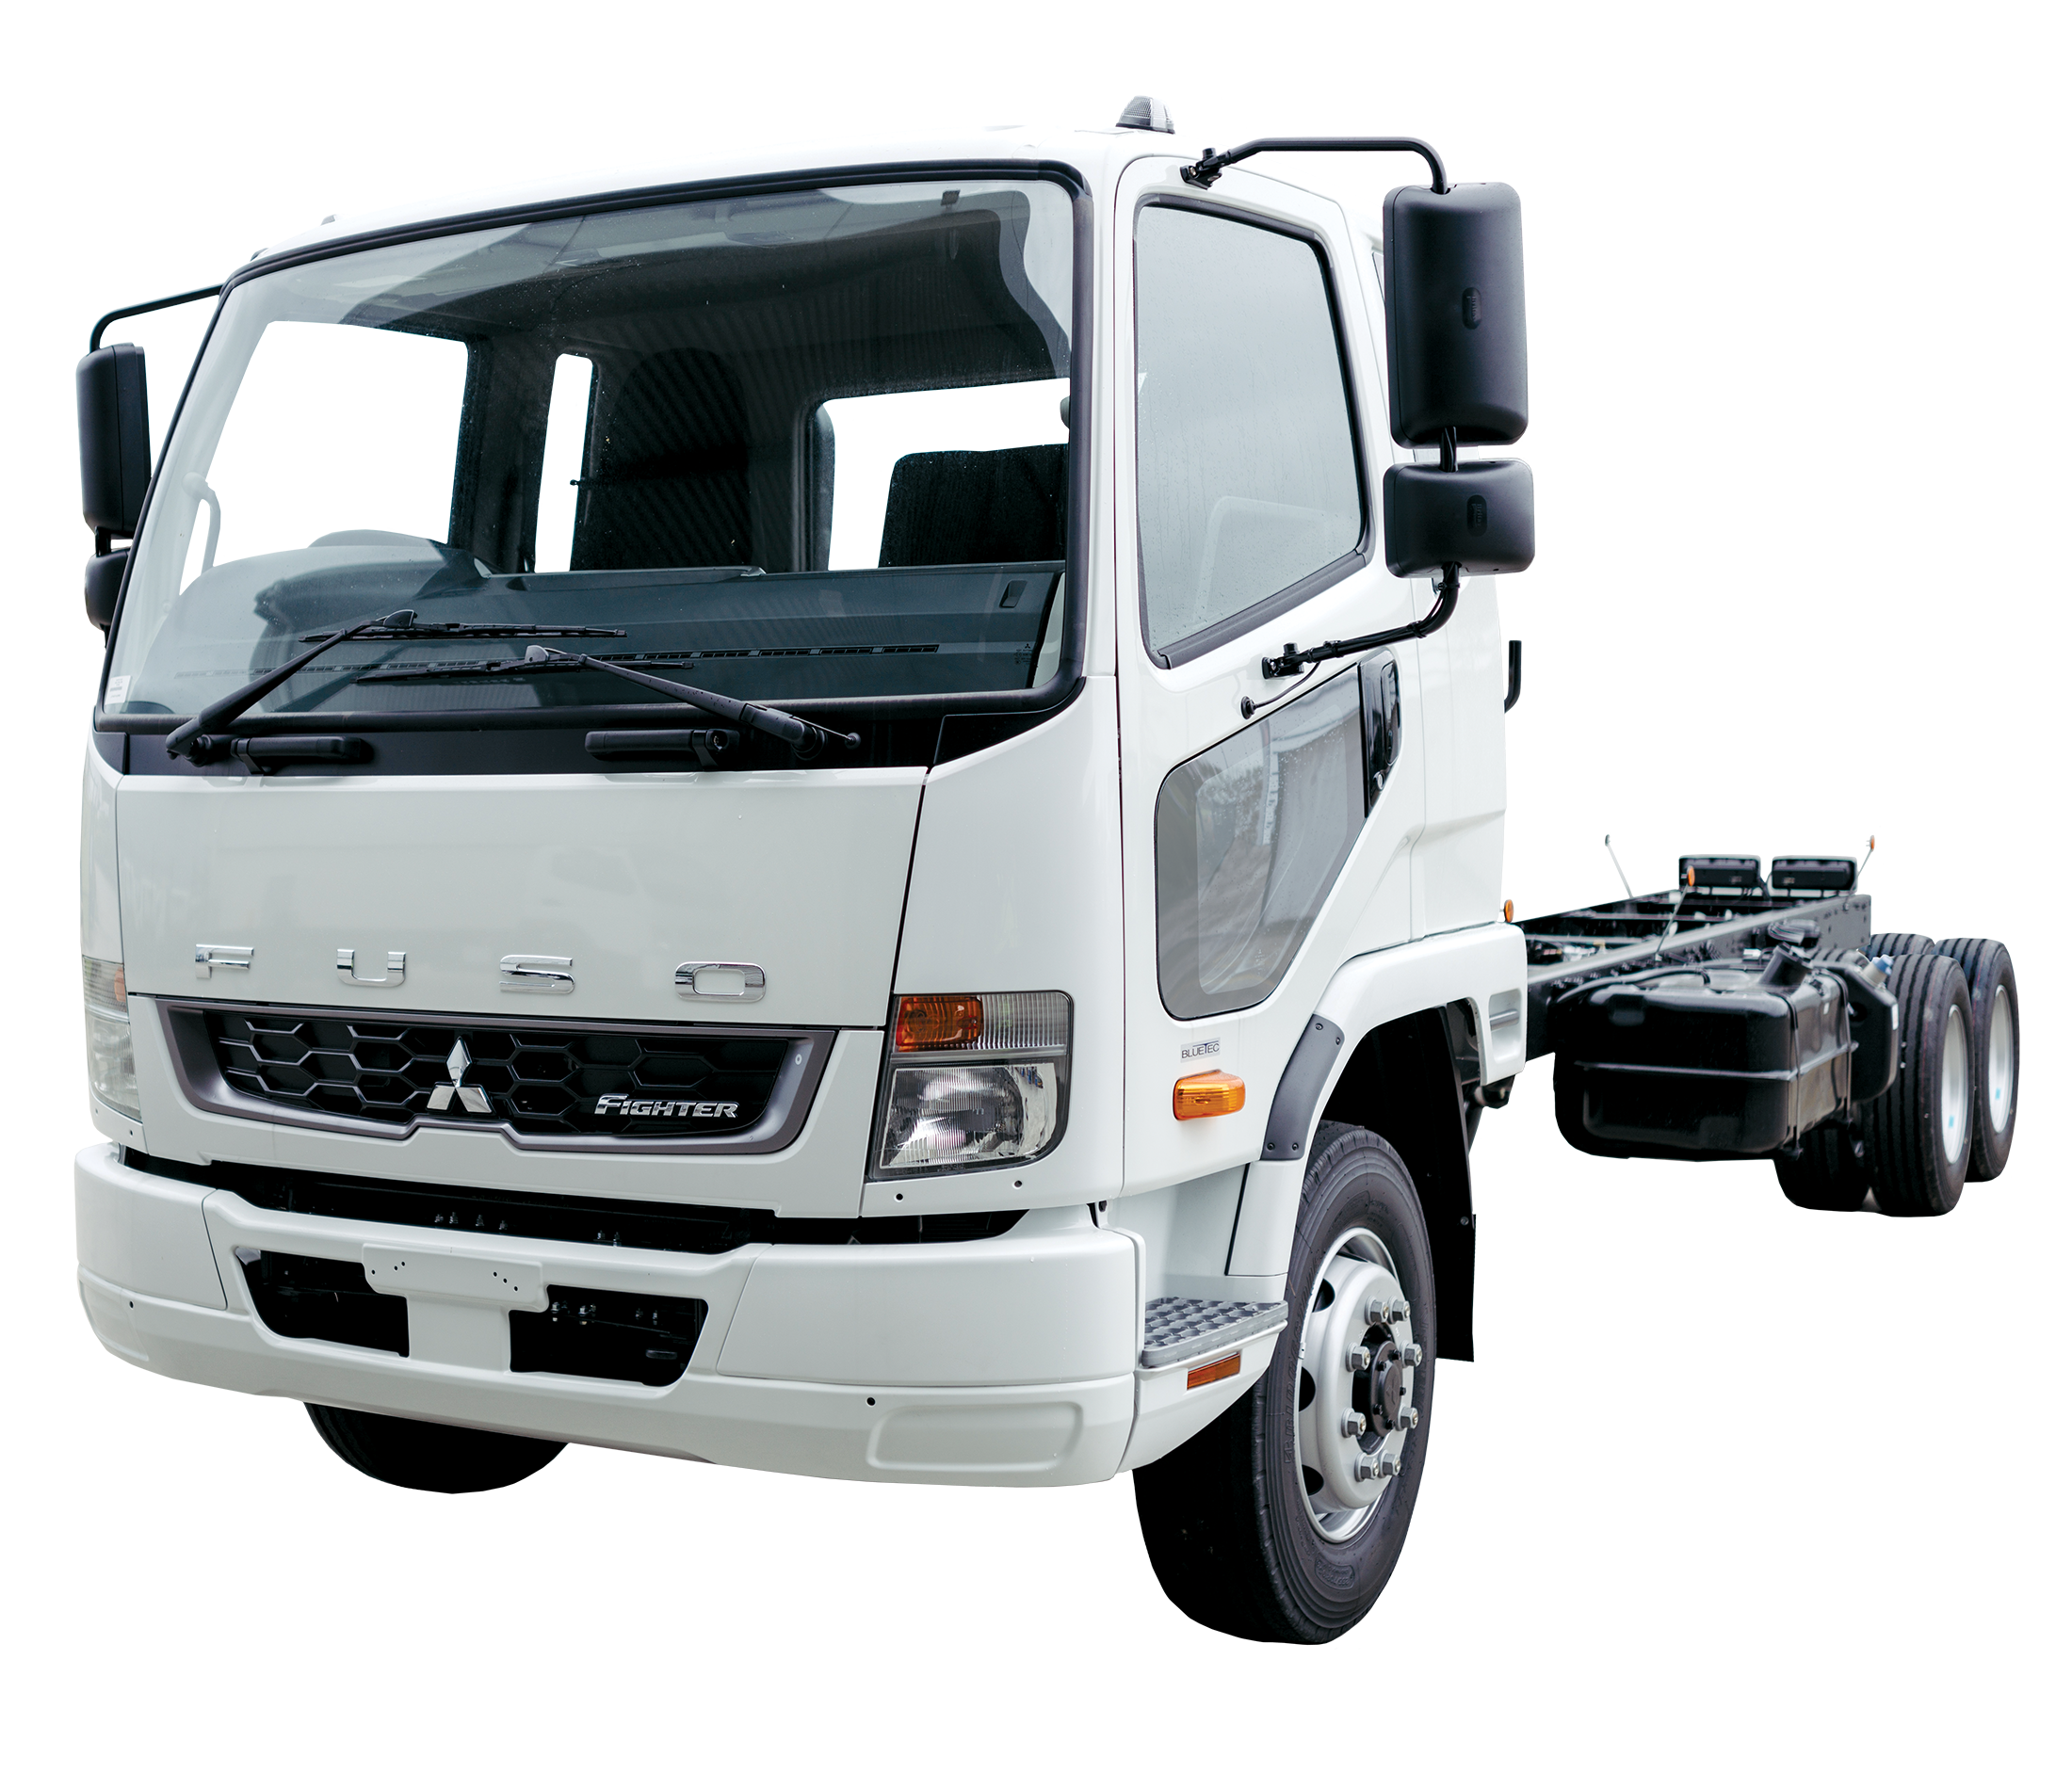 Fuso Fighter bus